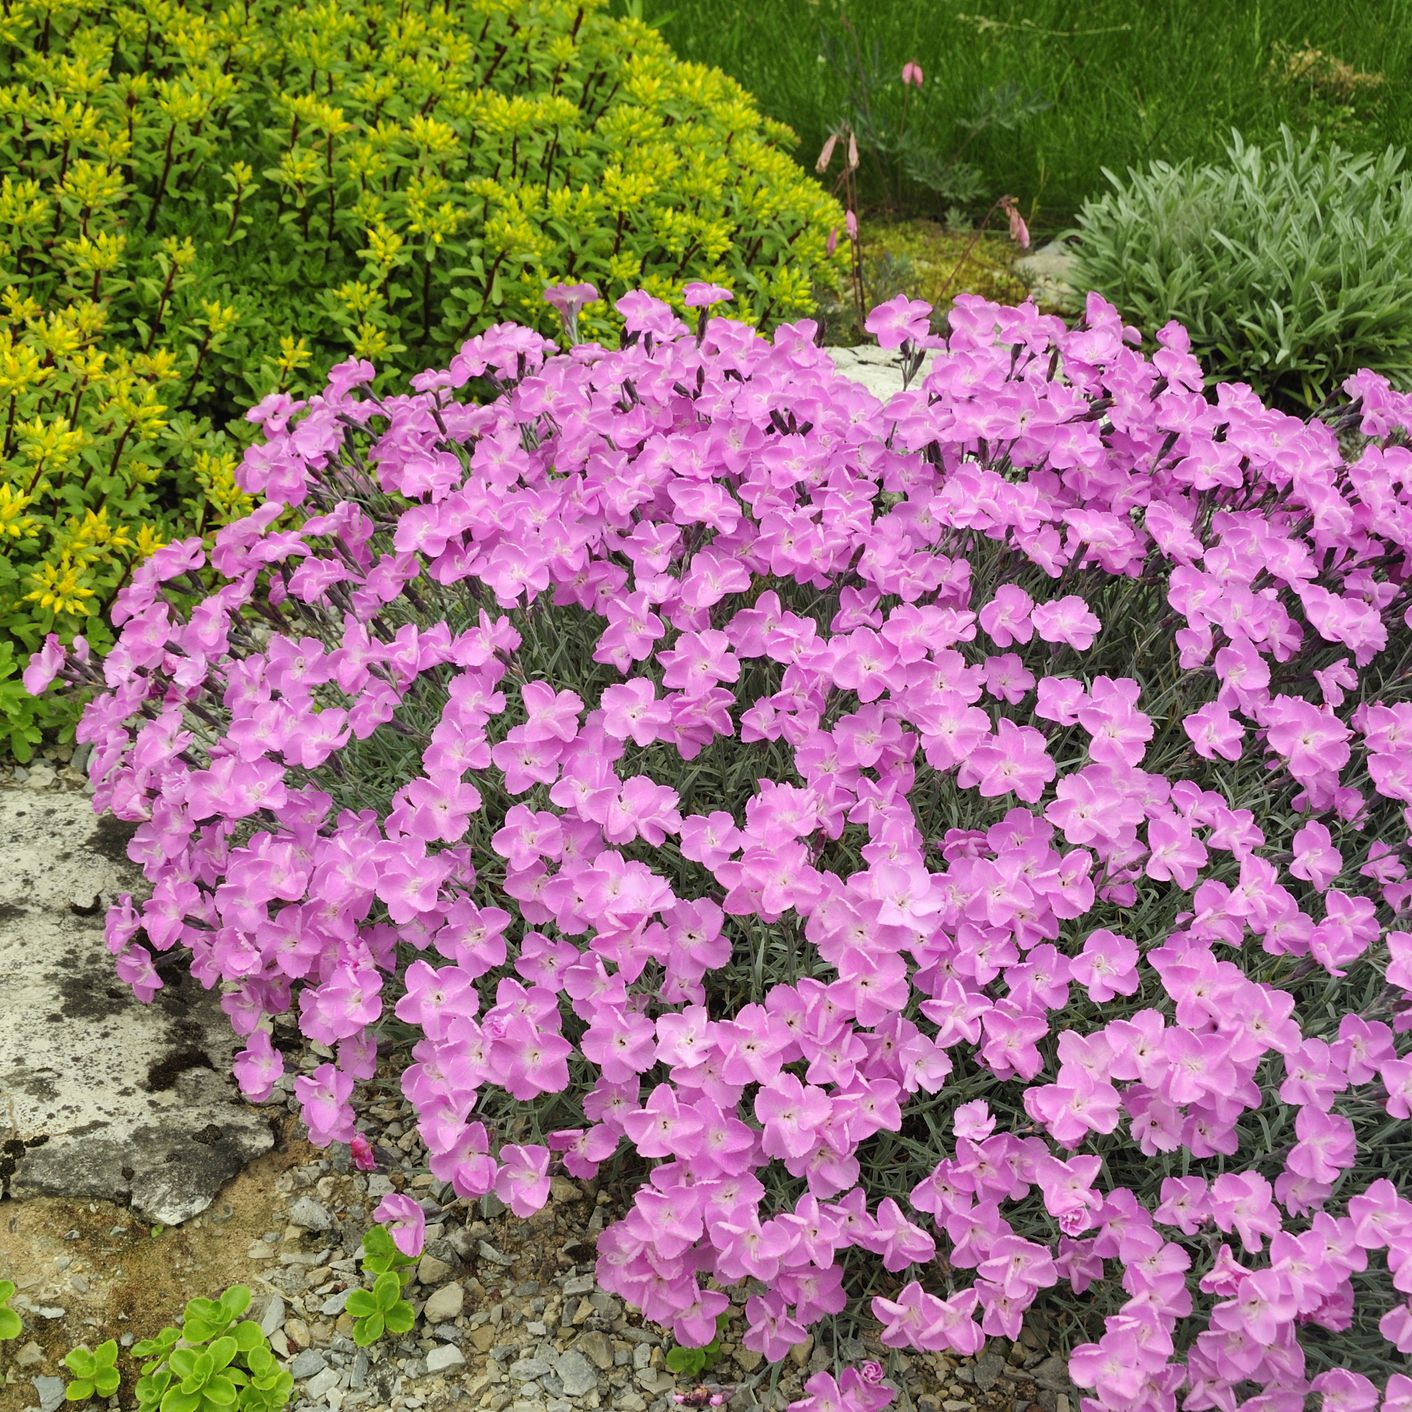 33 Best Plants for a Rock Garden Zone Plants Around House on full sun plants, plateau plants, zone 4 trees, evergreen rock garden plants, california plants, usda plants, united kingdom plants, zone 4 architecture, temperature zones for plants, zone 4 vines, garden mums plants, zone 4 landscaping, zone 4 flowers, zone 4 grasses, south dakota plants, san francisco plants, zone 4 gardening, roses plants, zone 4 roses, unknown plants,